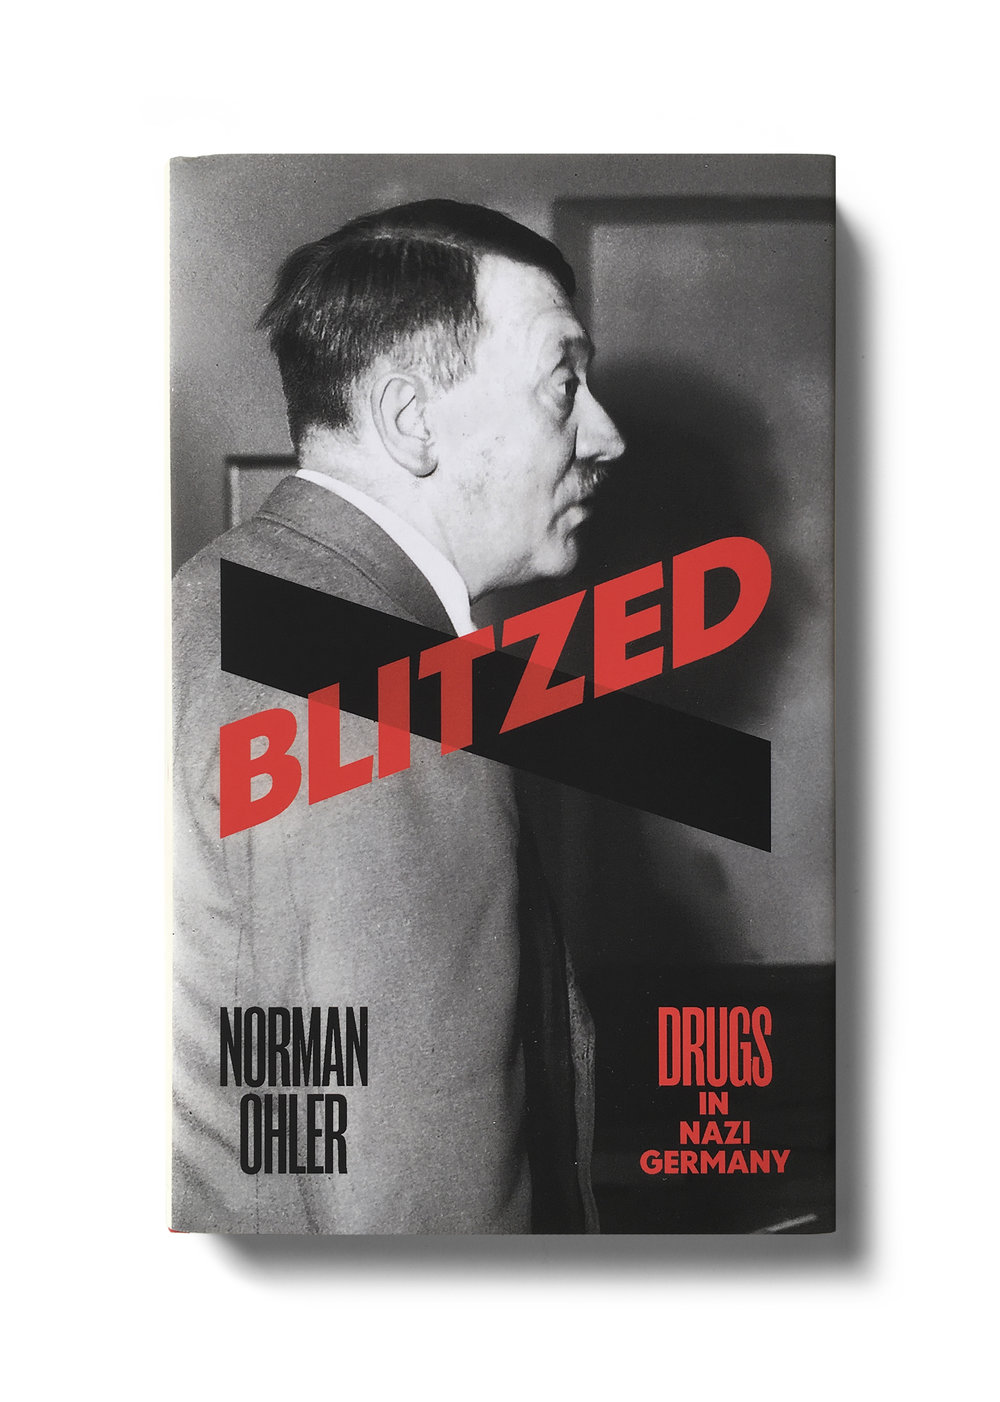 Blitzed by Norman Ohler -  Design: Jim Stoddart